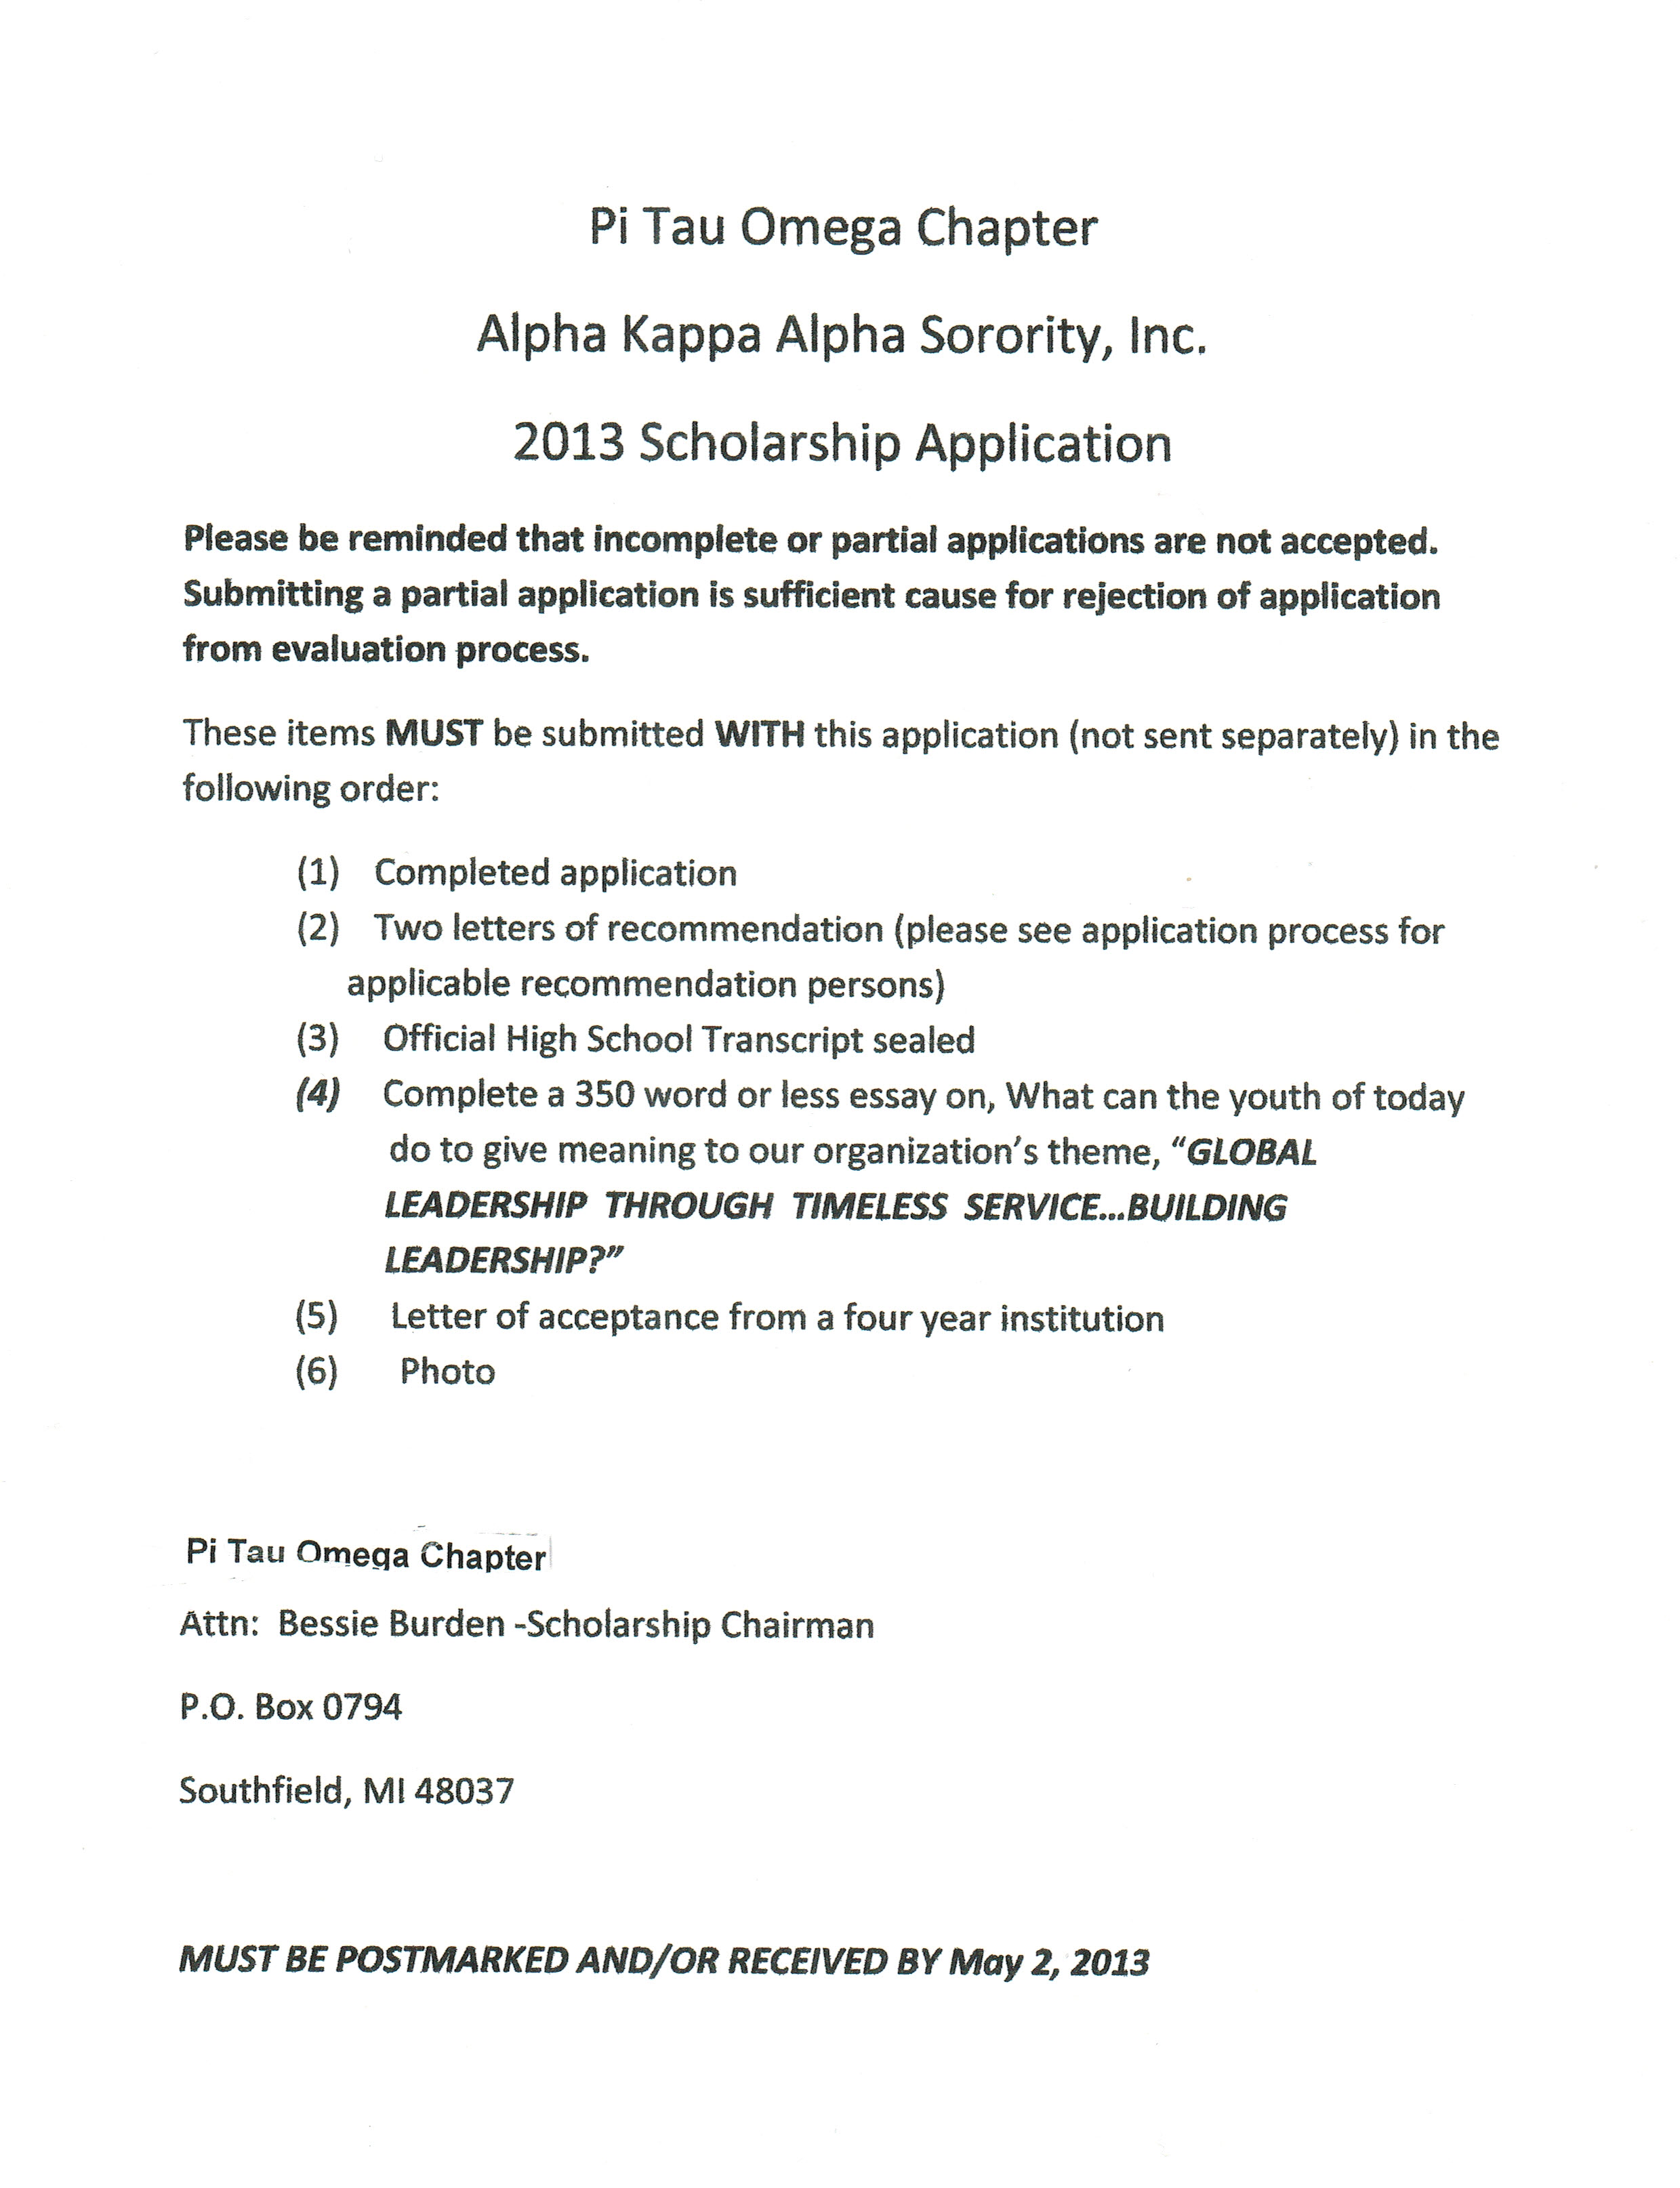 sample letter of recommendation for aka sorority pi tau omega chapter of alpha kappa alpha sorority inc 24629 | cci03052013 0002